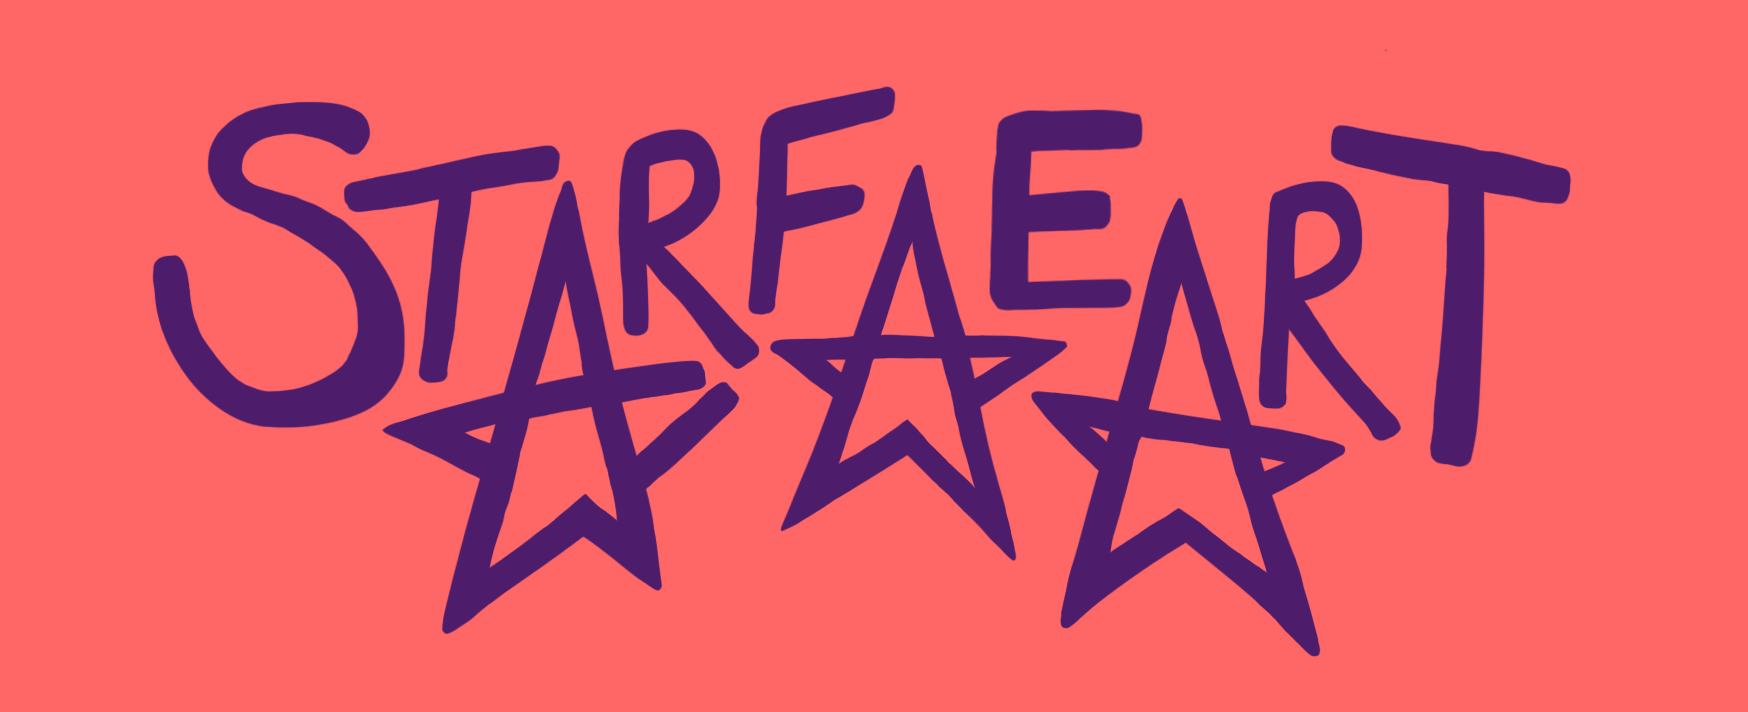 Star Far Art Banner Design